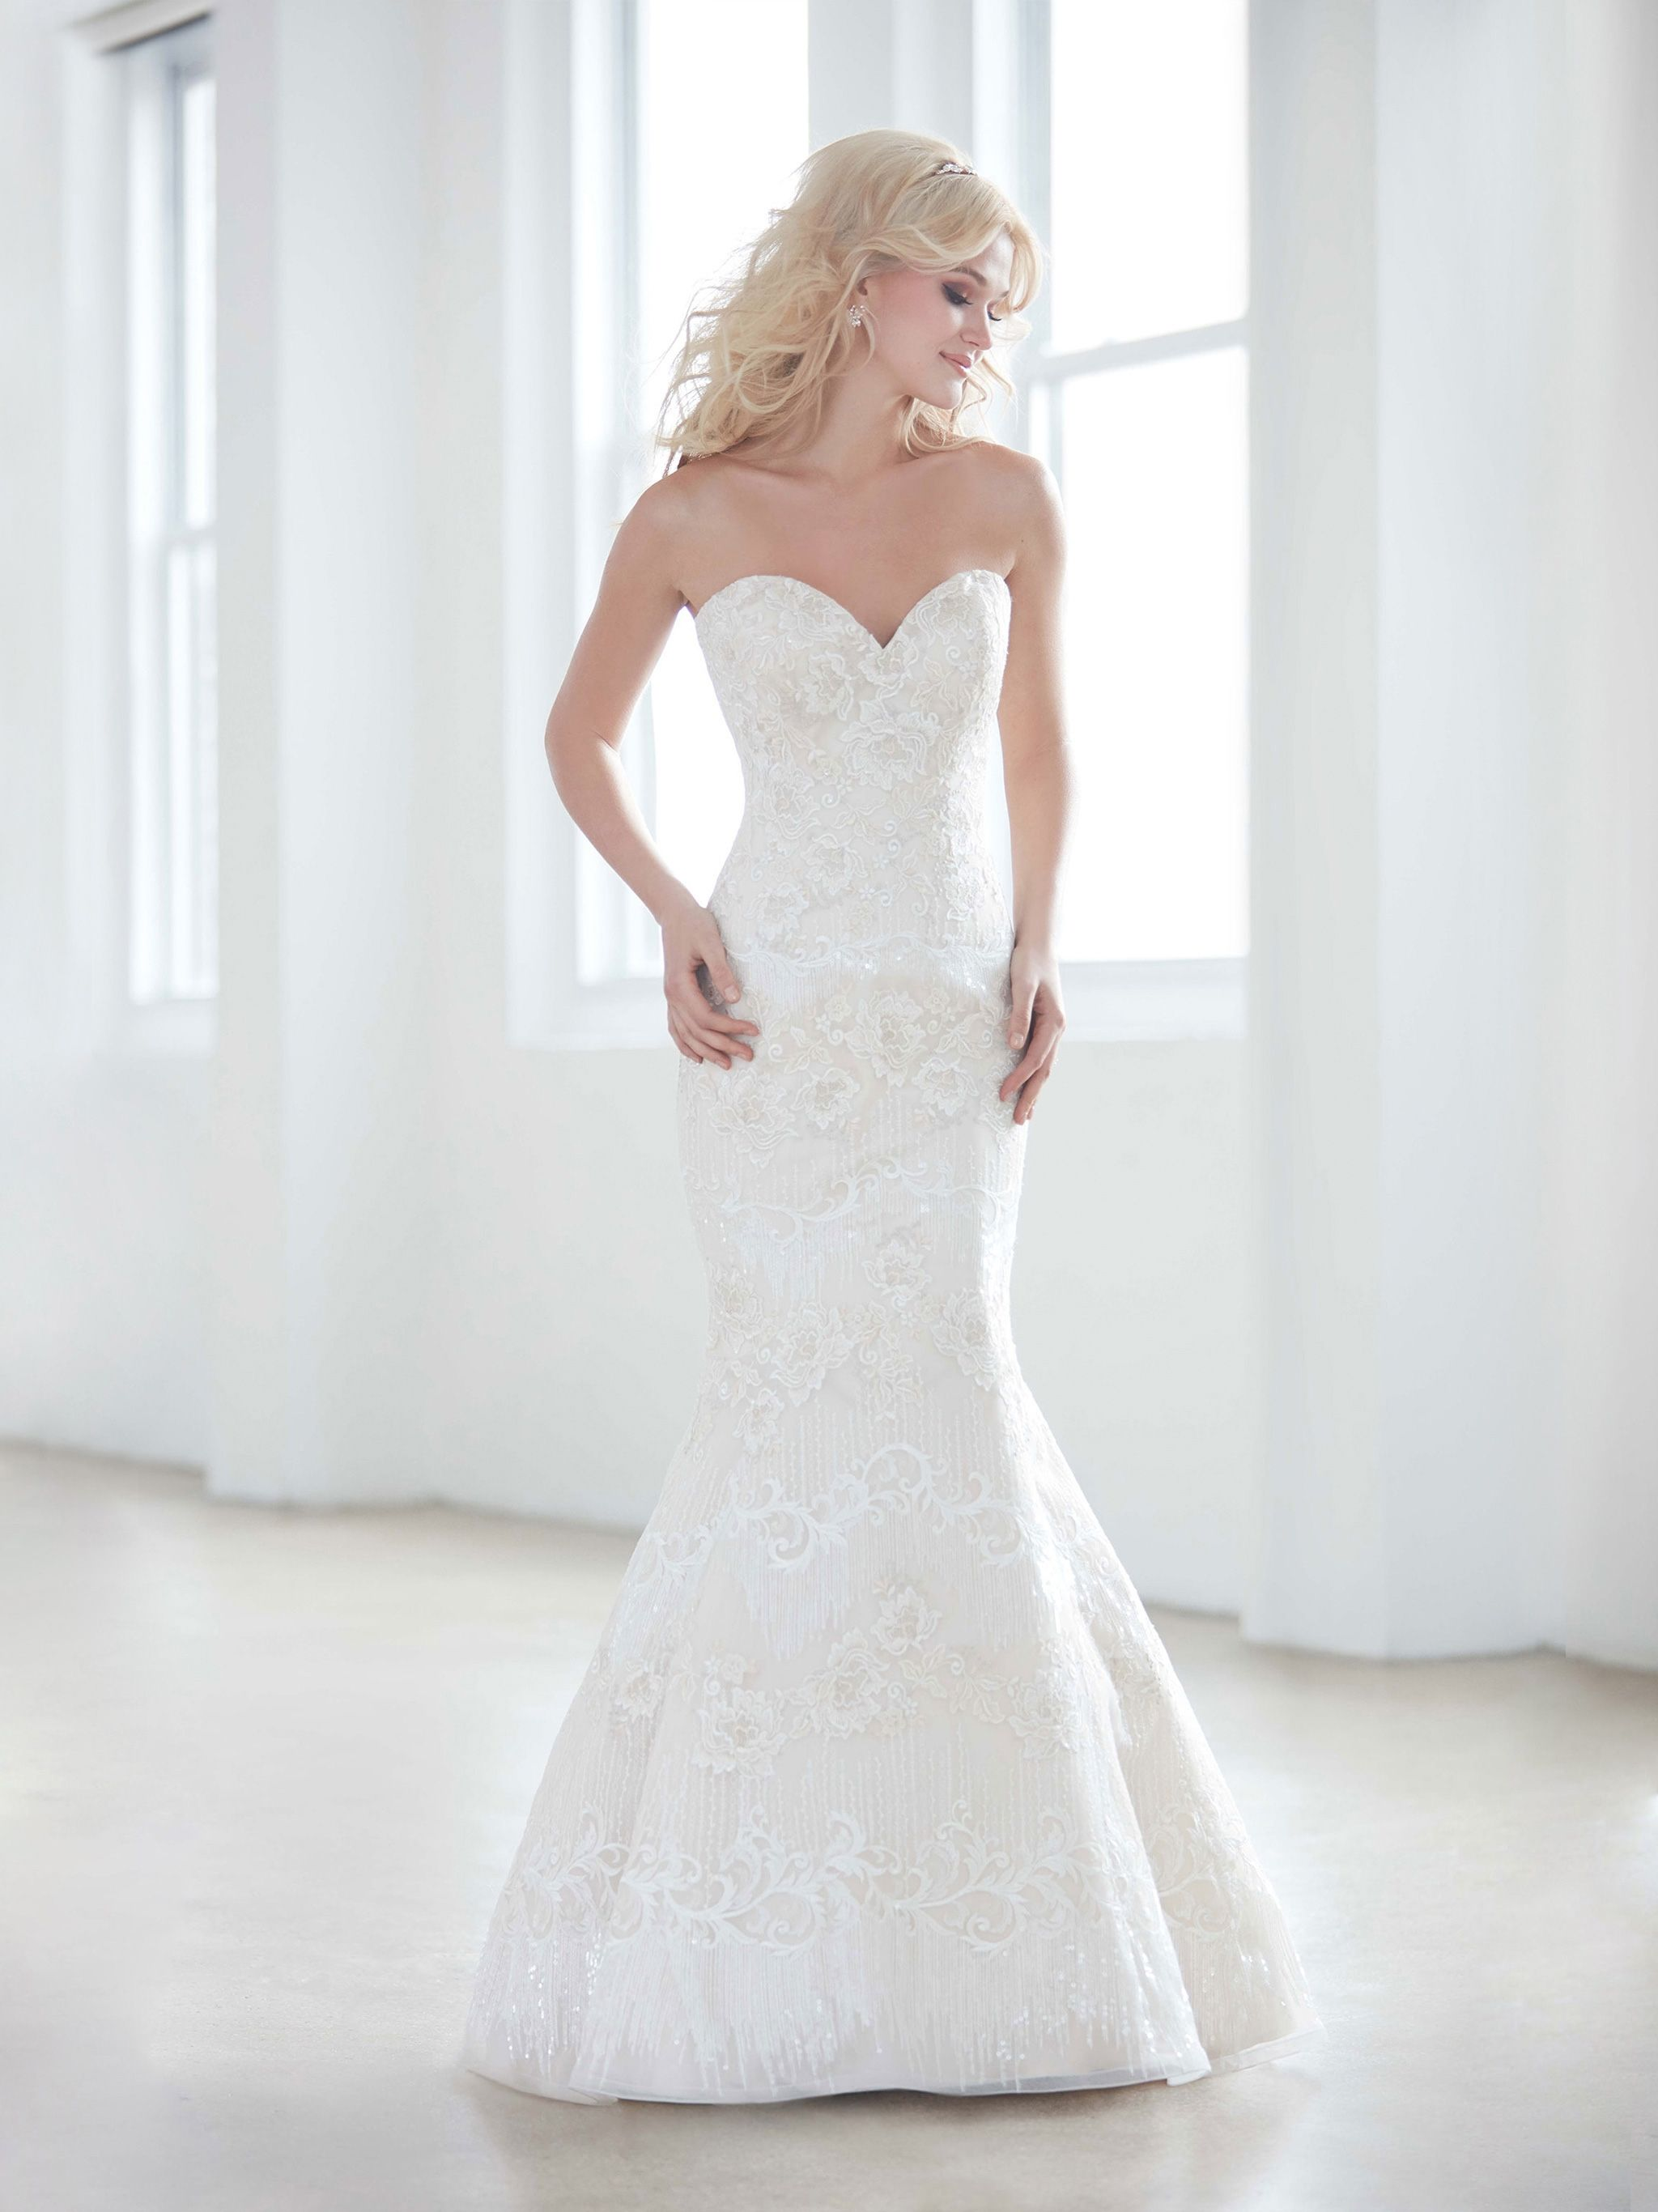 Pin By Lauren Parco On Madison James Bridal Gowns Pinterest